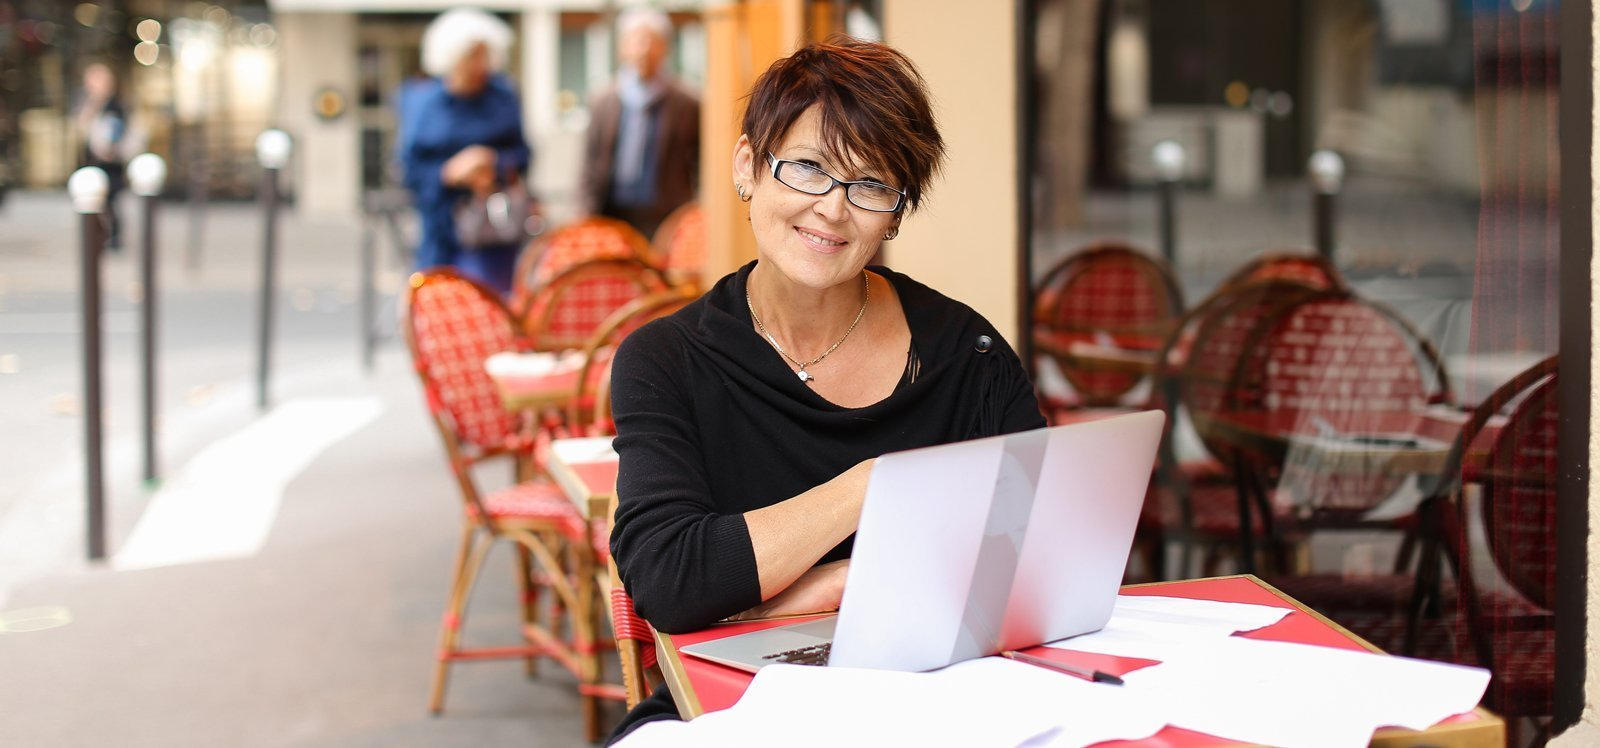 Woman in glasses outside at a café writing on a laptop